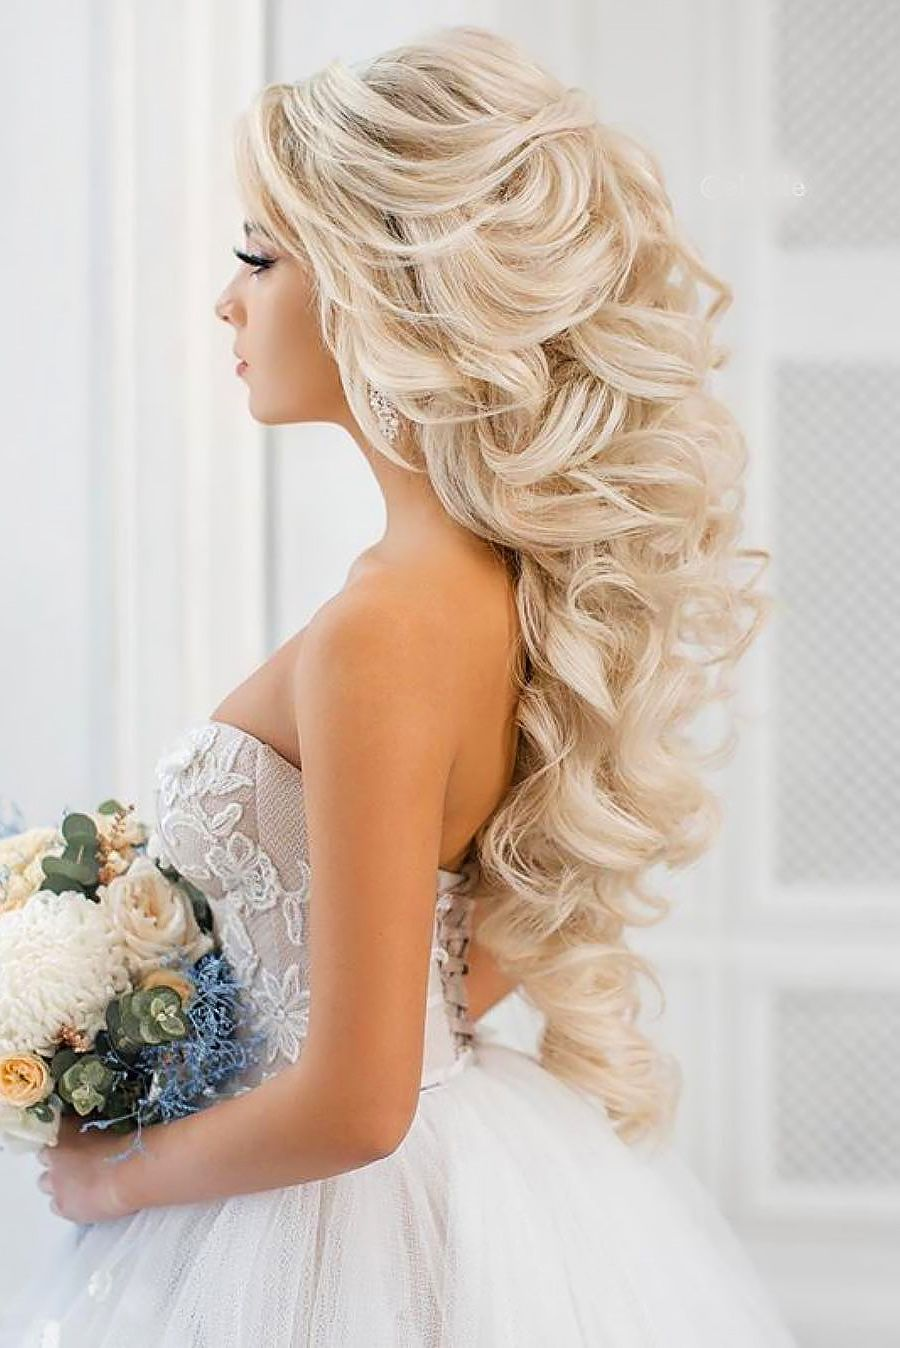 36 boho inspired creative and unique wedding hairstyles | unique